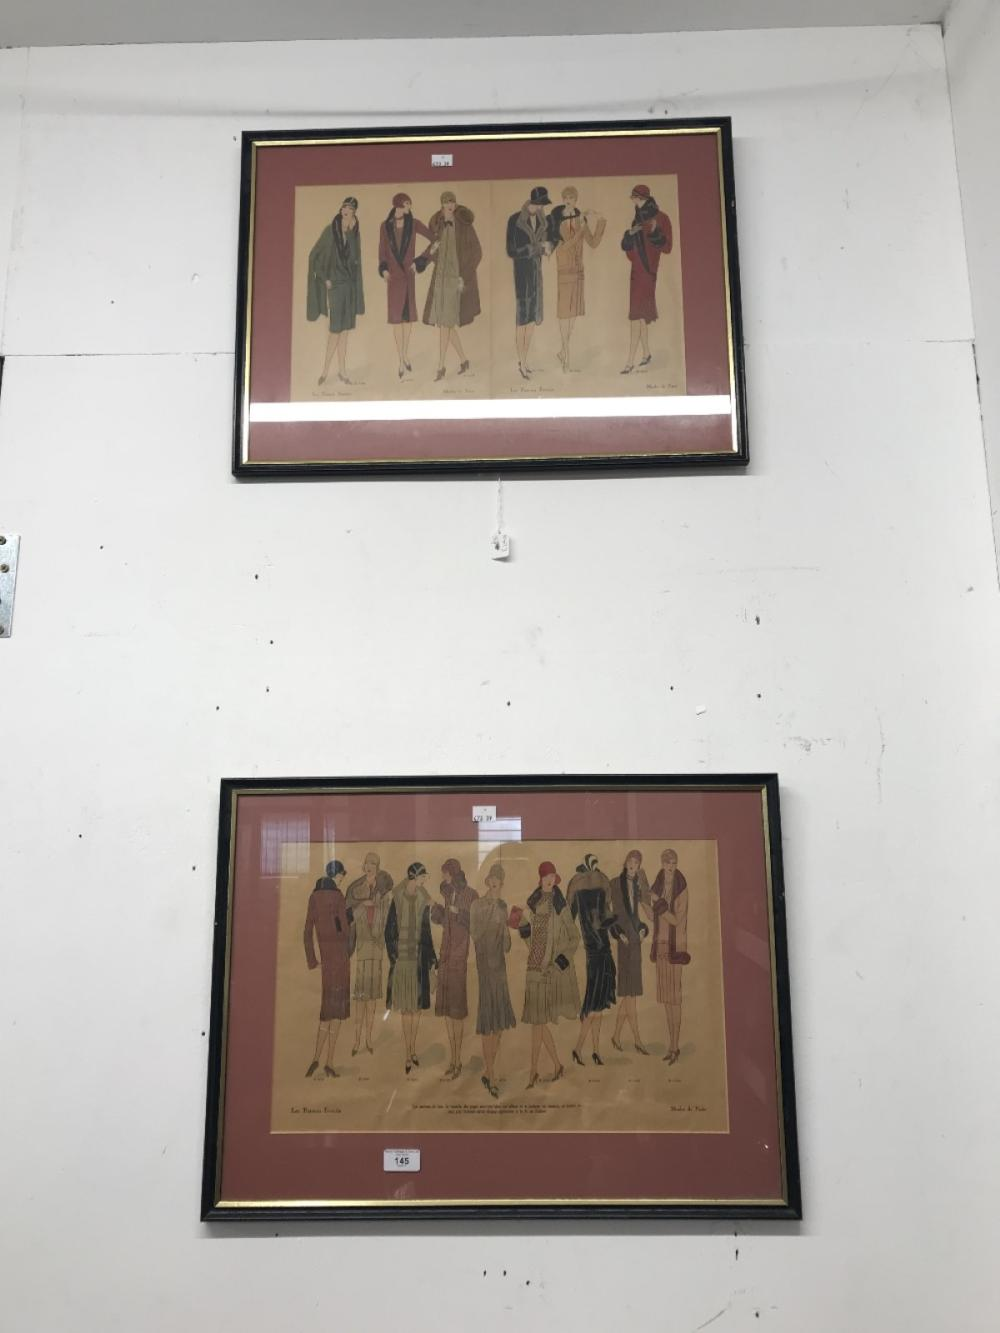 Prints: Colour fashion of Paris plates in the 1920s pages from a catalogue. Both framed and glazed.